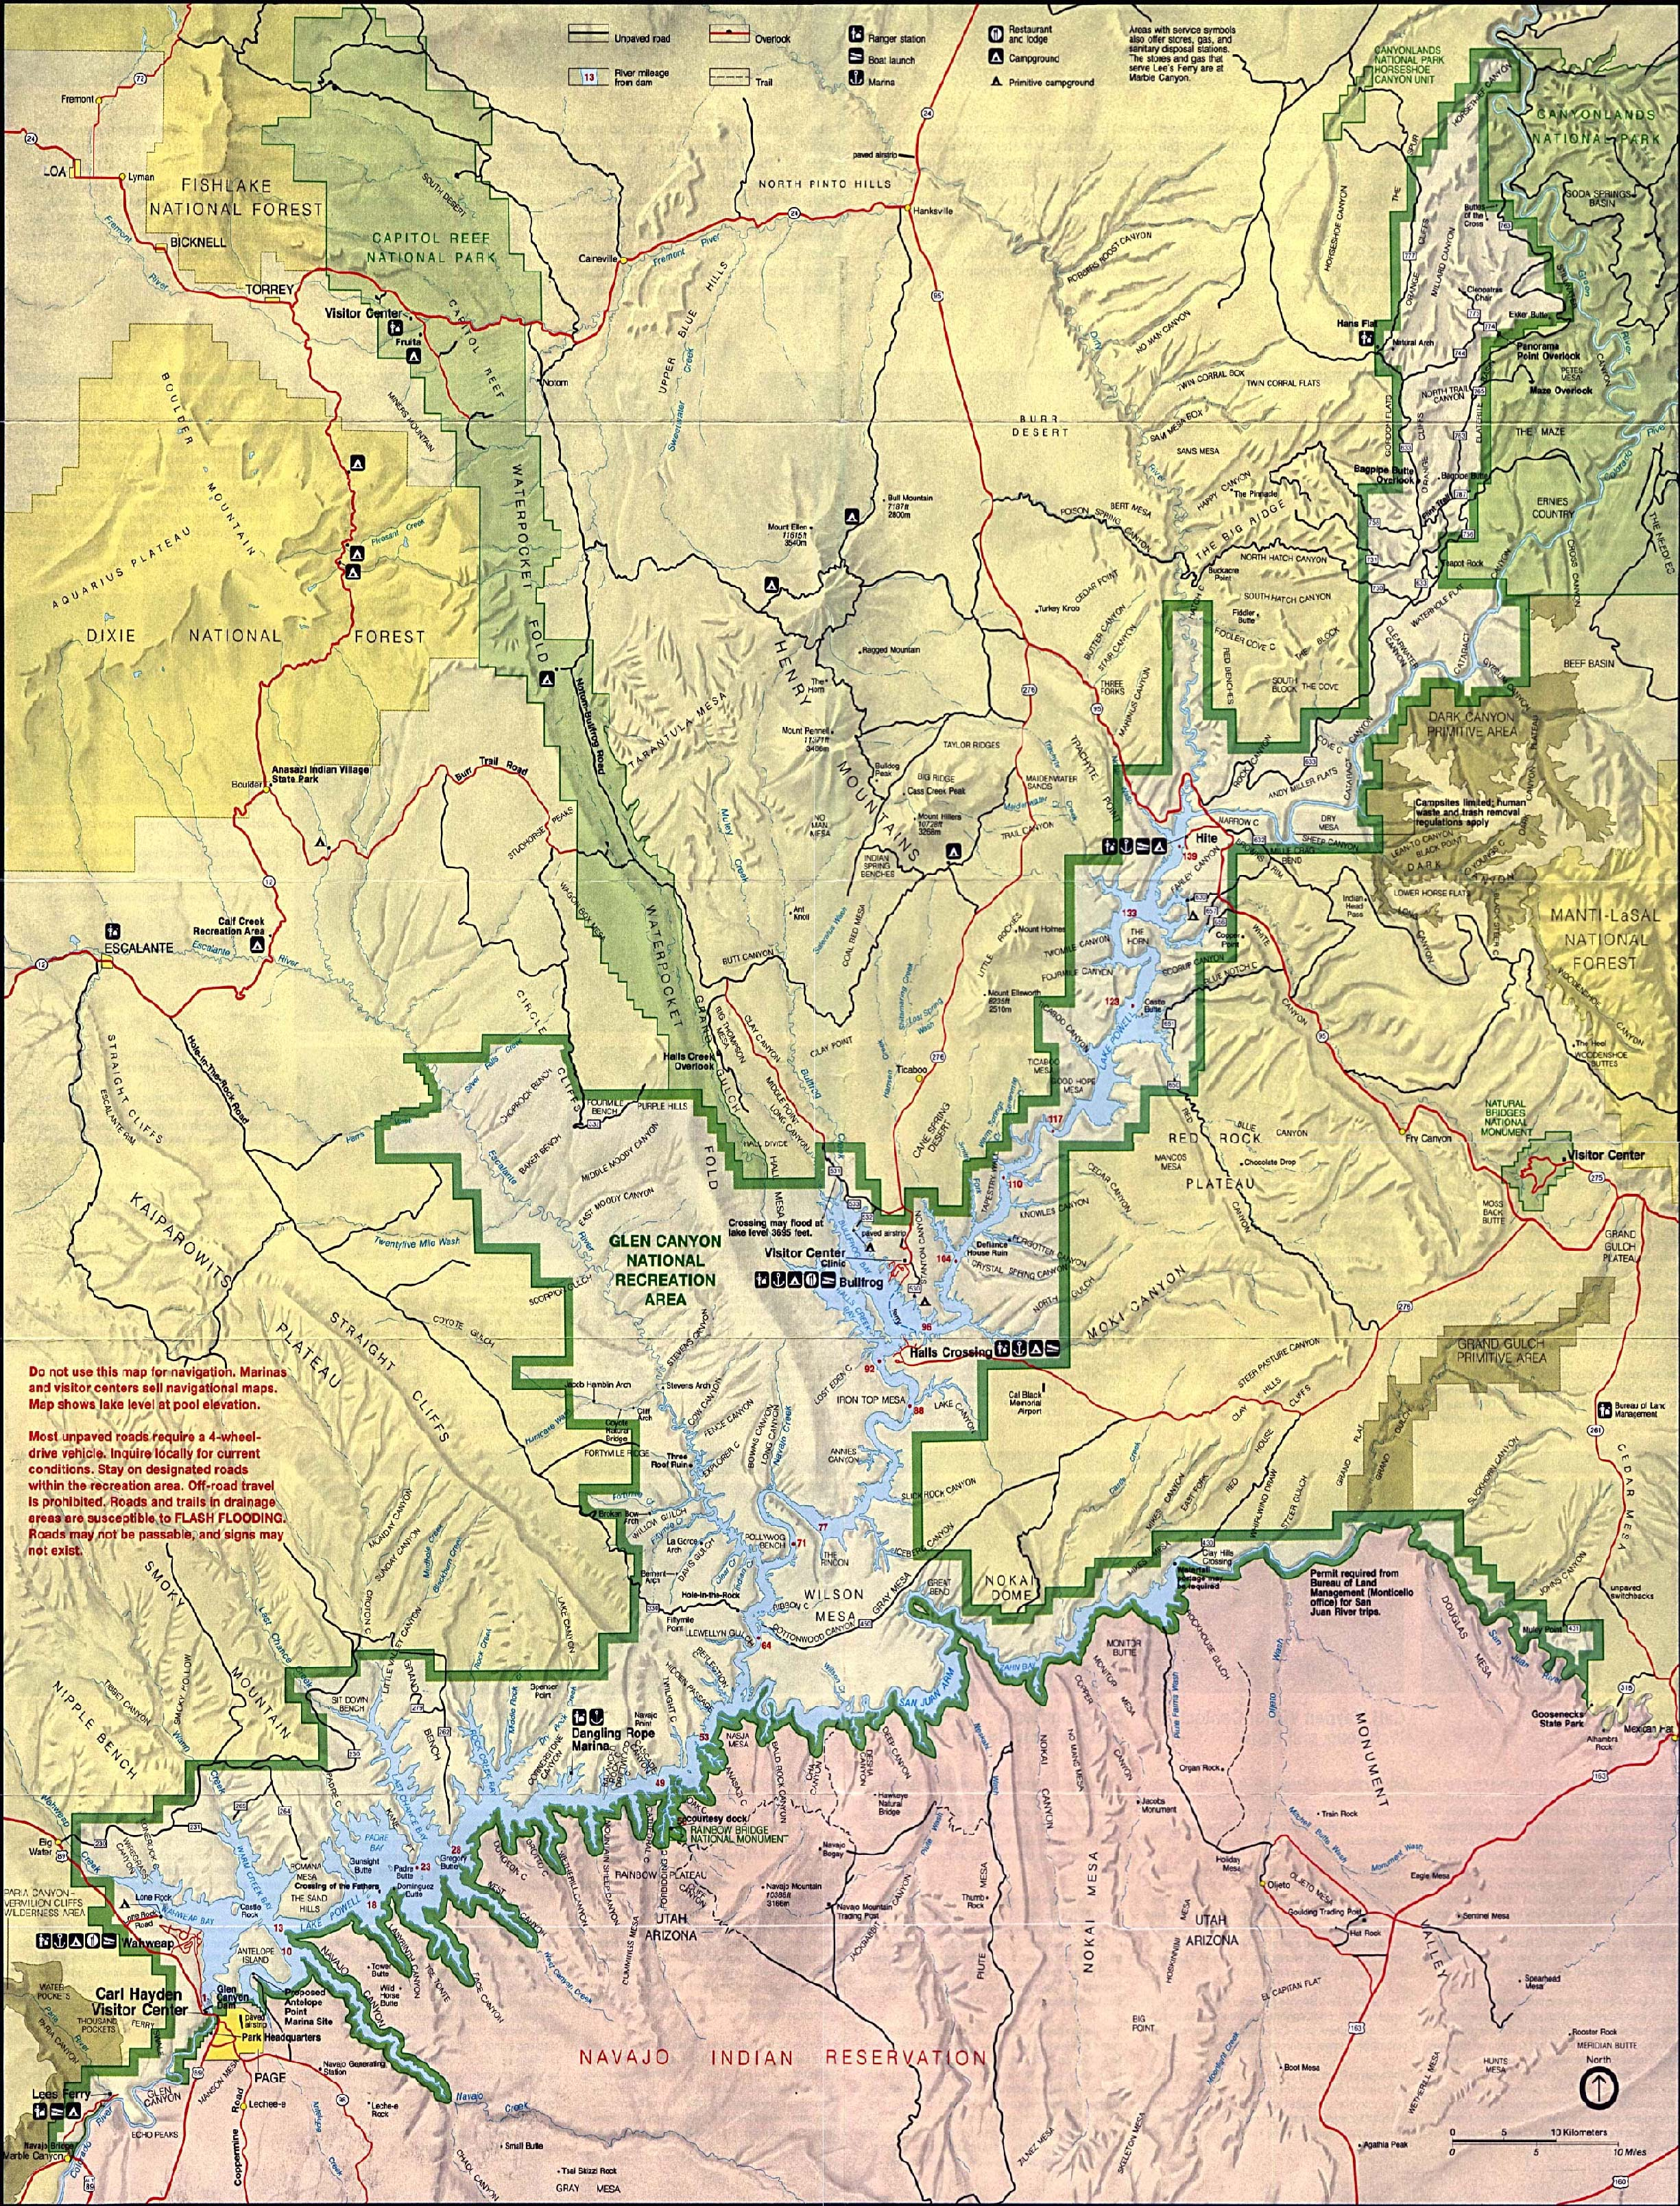 Mapa de Relieve Sombreado del Área Nacional de Recreación Glen Canyon, Arizona y Utah, Estados Unidos